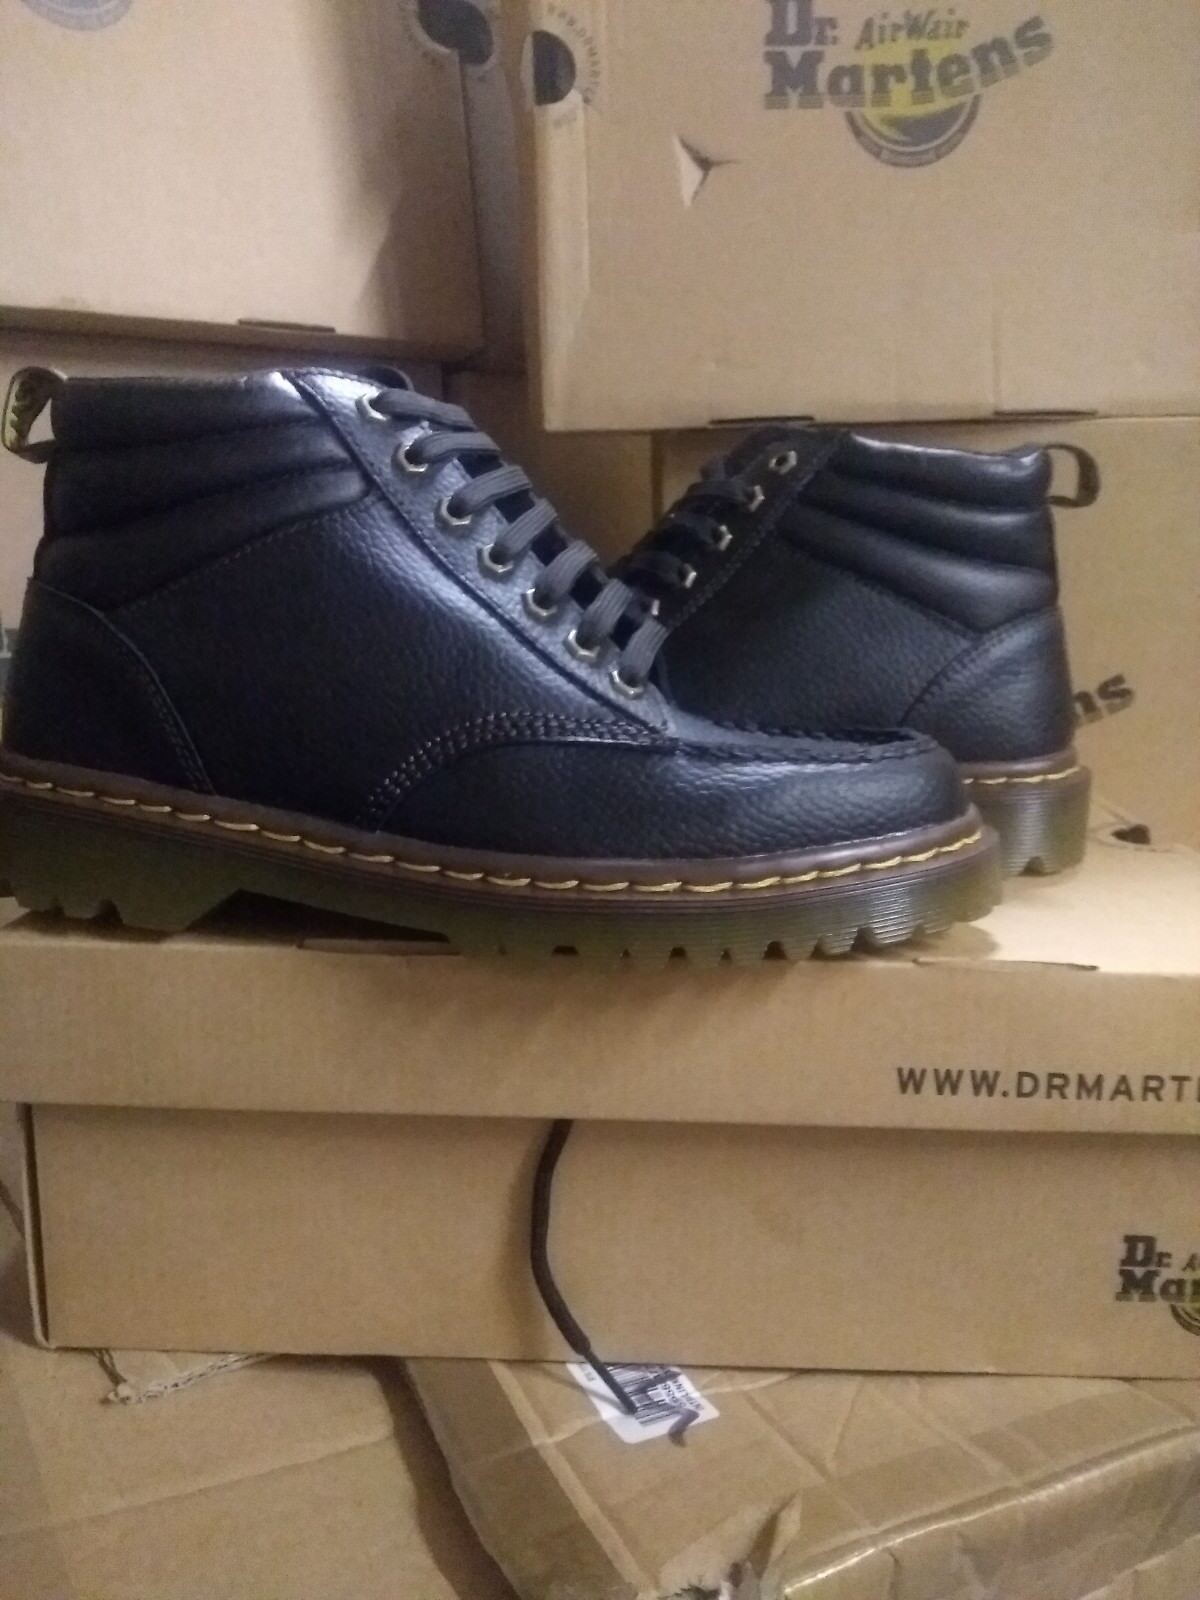 DR MARTENS 7 EYELET BOOT BROWN SIZE 8